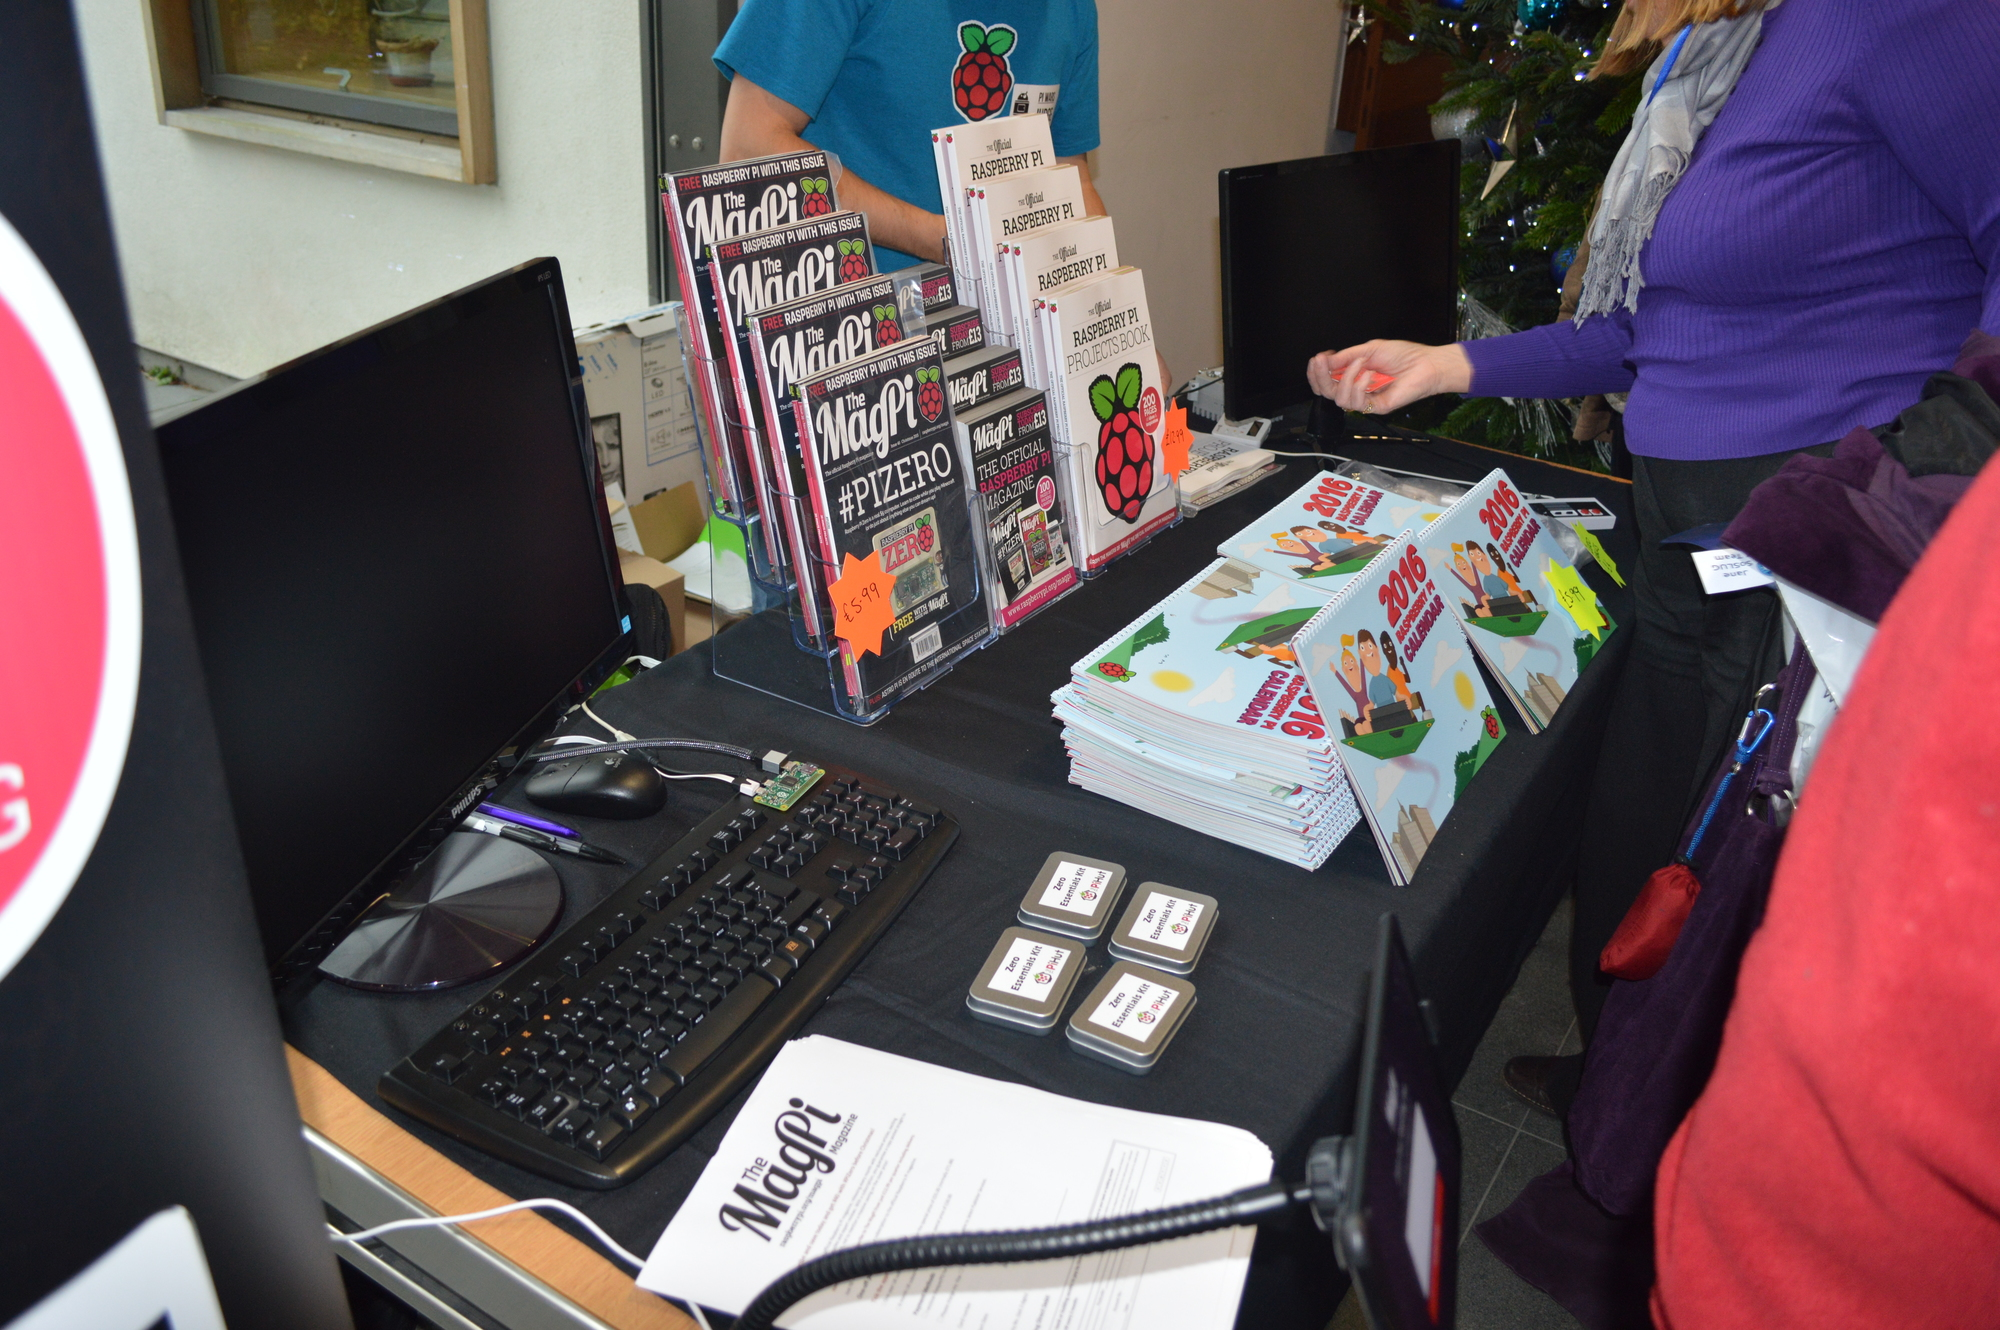 We had a stall at Pi Wars, full of MagPi goodness and projects